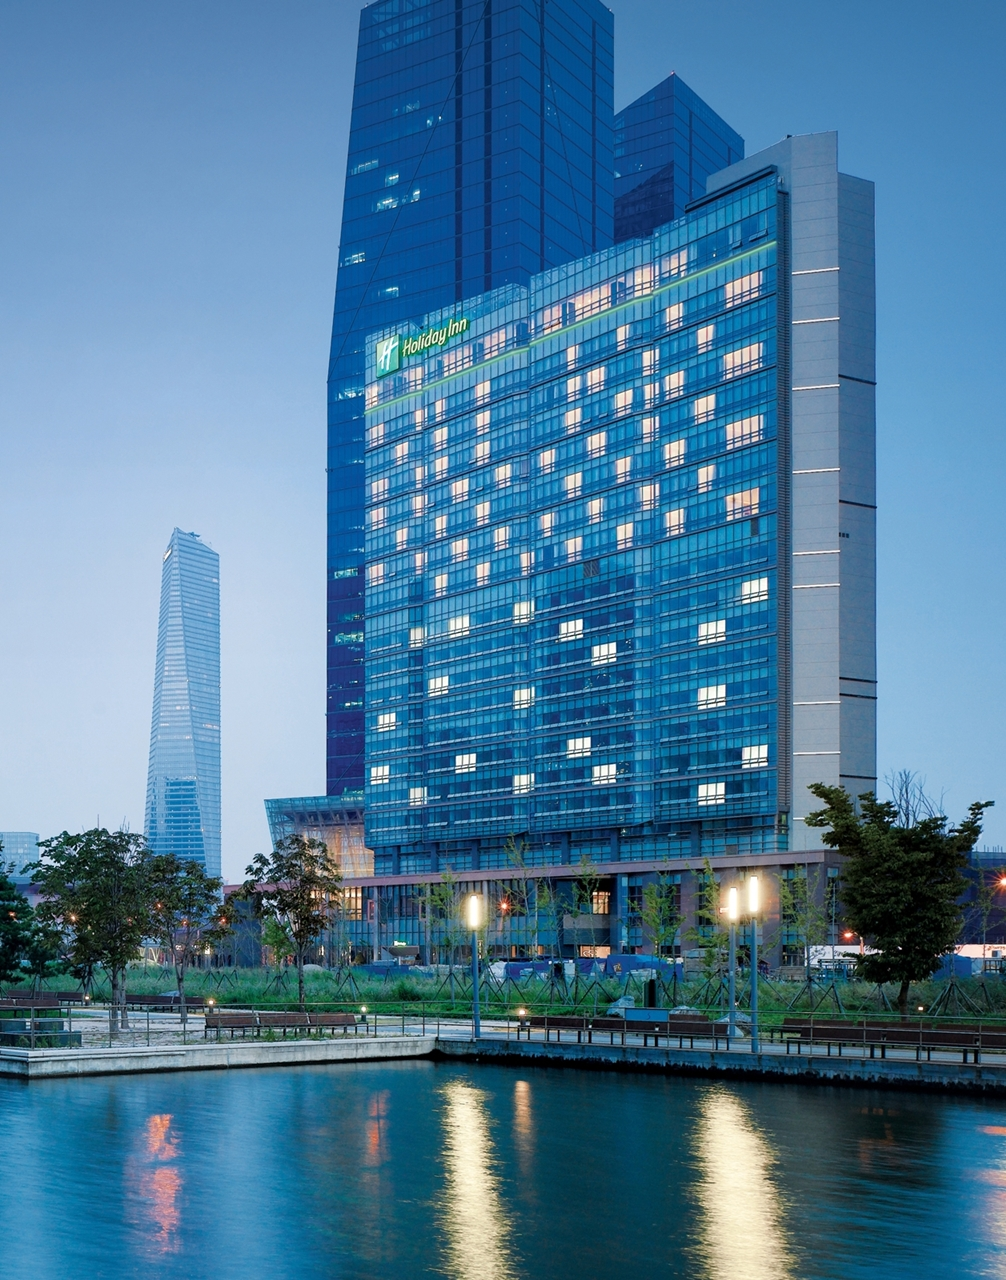 Holiday in Songdo